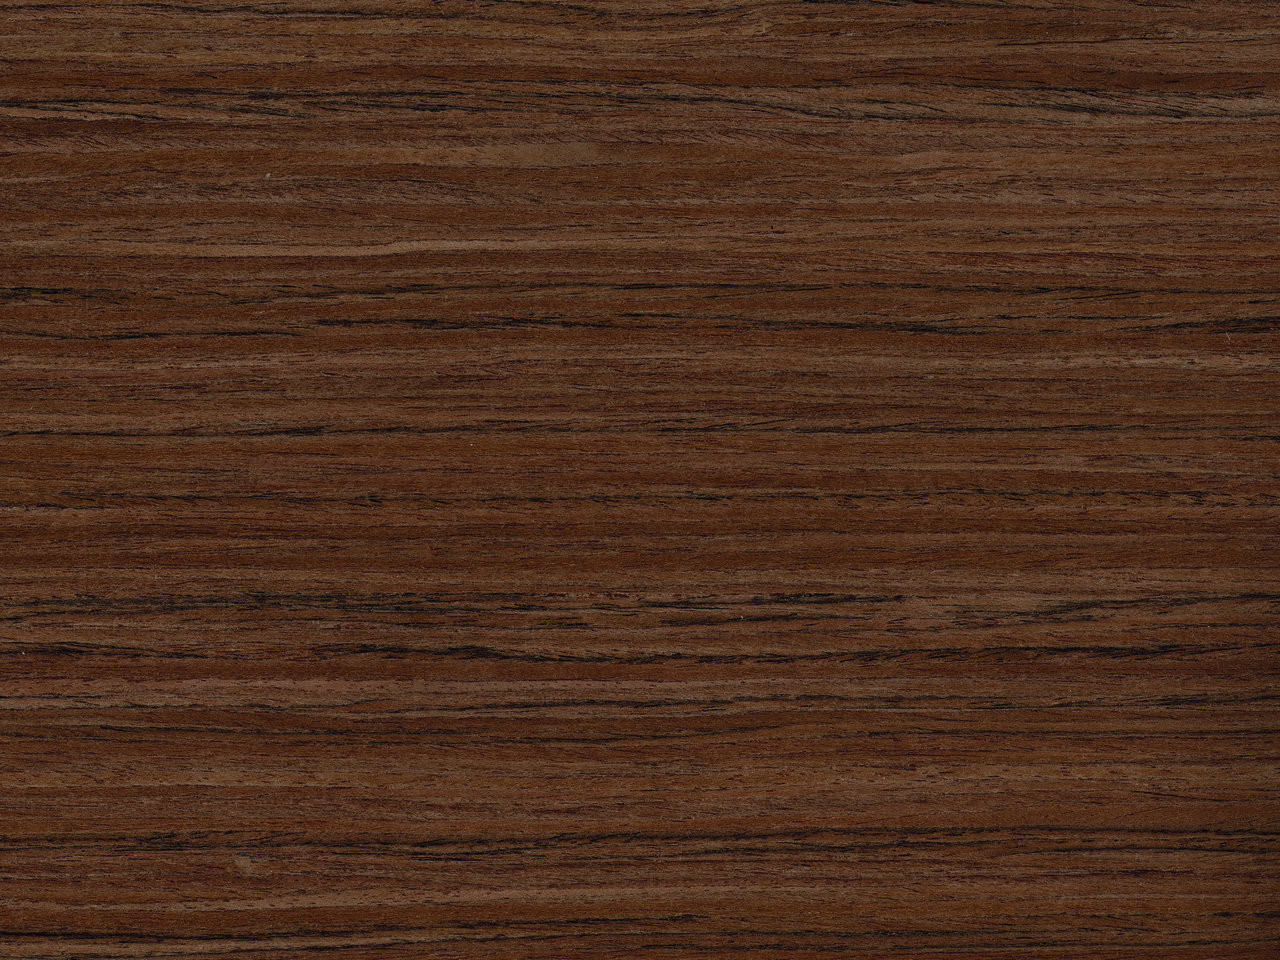 Reconstituted teak wood veneer qtr tk 016s for Oakwood veneers